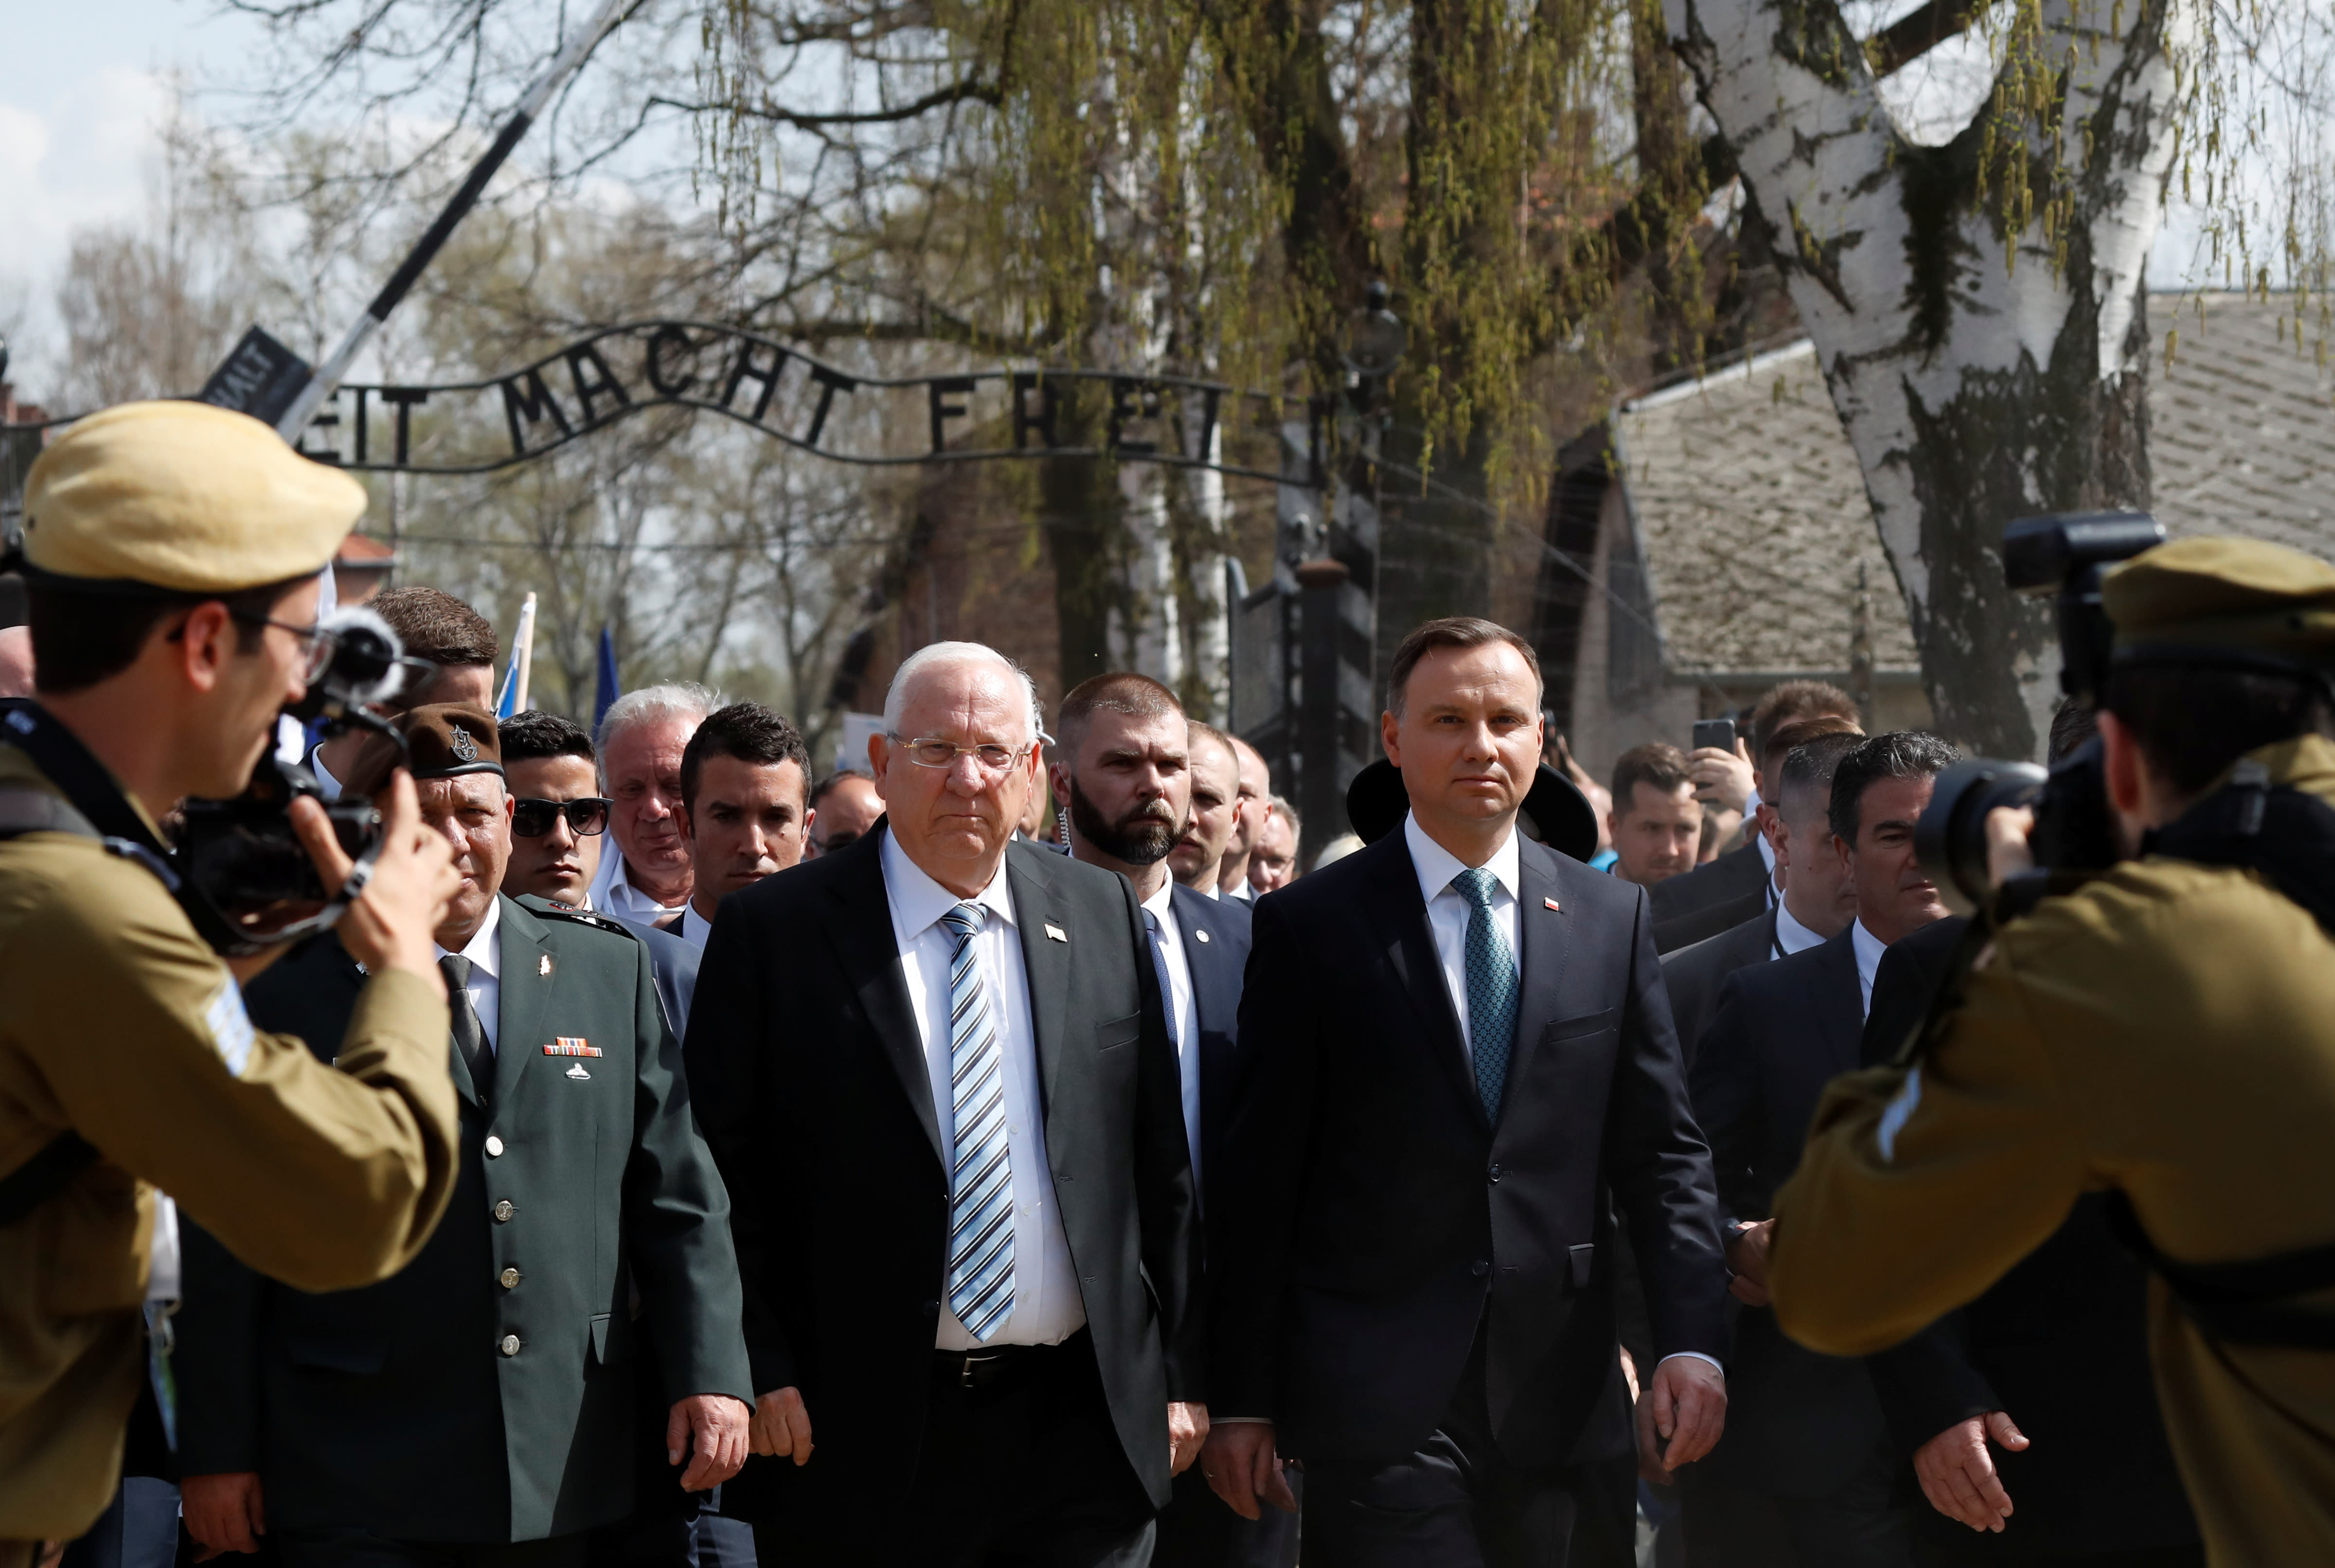 Israeli President Reuven Rivlin and Polish President Andrzej Duda are seen at the Entrance to Auschwitz as they take part in the annual March of the Living (KACPER PEMPEL/REUTERS)